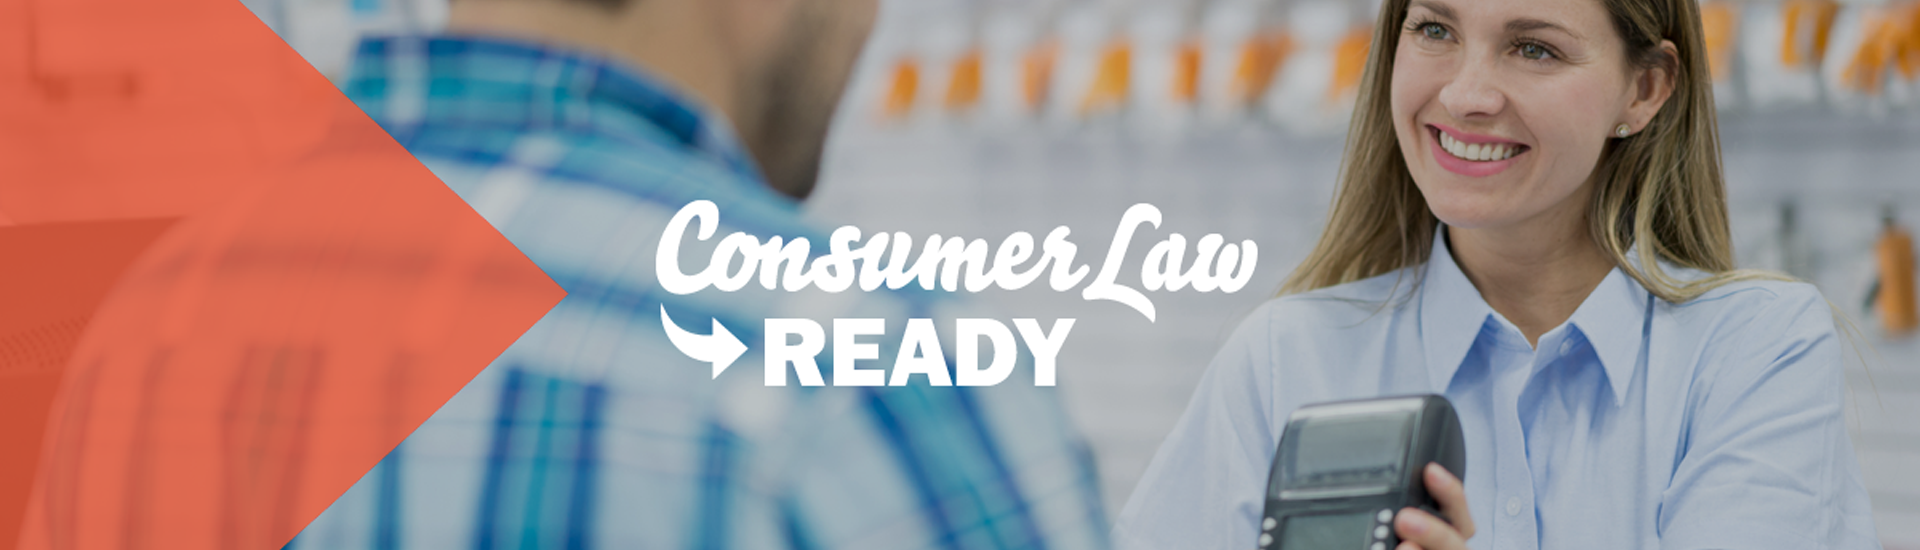 Formation consumer law ready